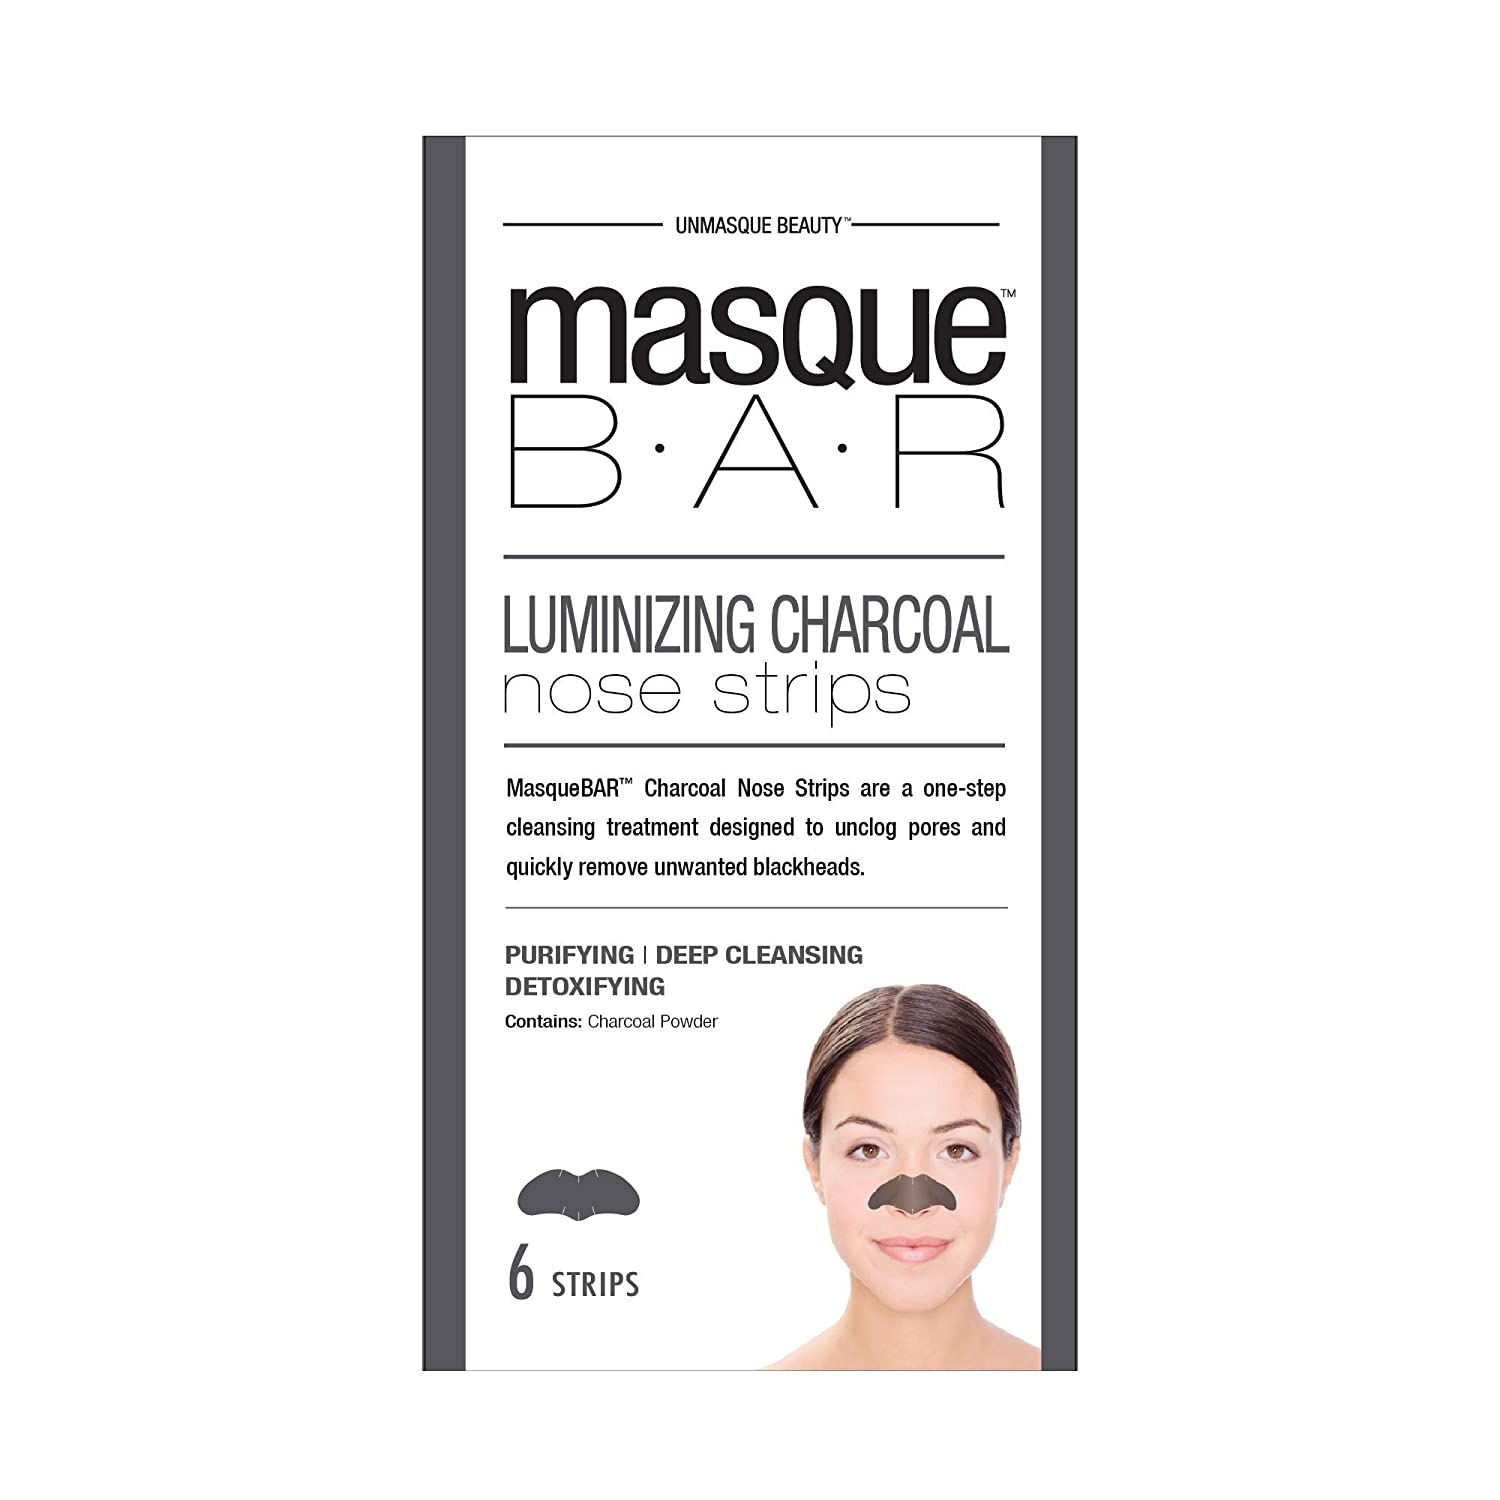 masque Bar Charcoal Nose Strips w/Witch Hazel - Refining Mask To Unclog Pores & Remove Blackheads - Made in Korea Look Beauty Inc LB00678